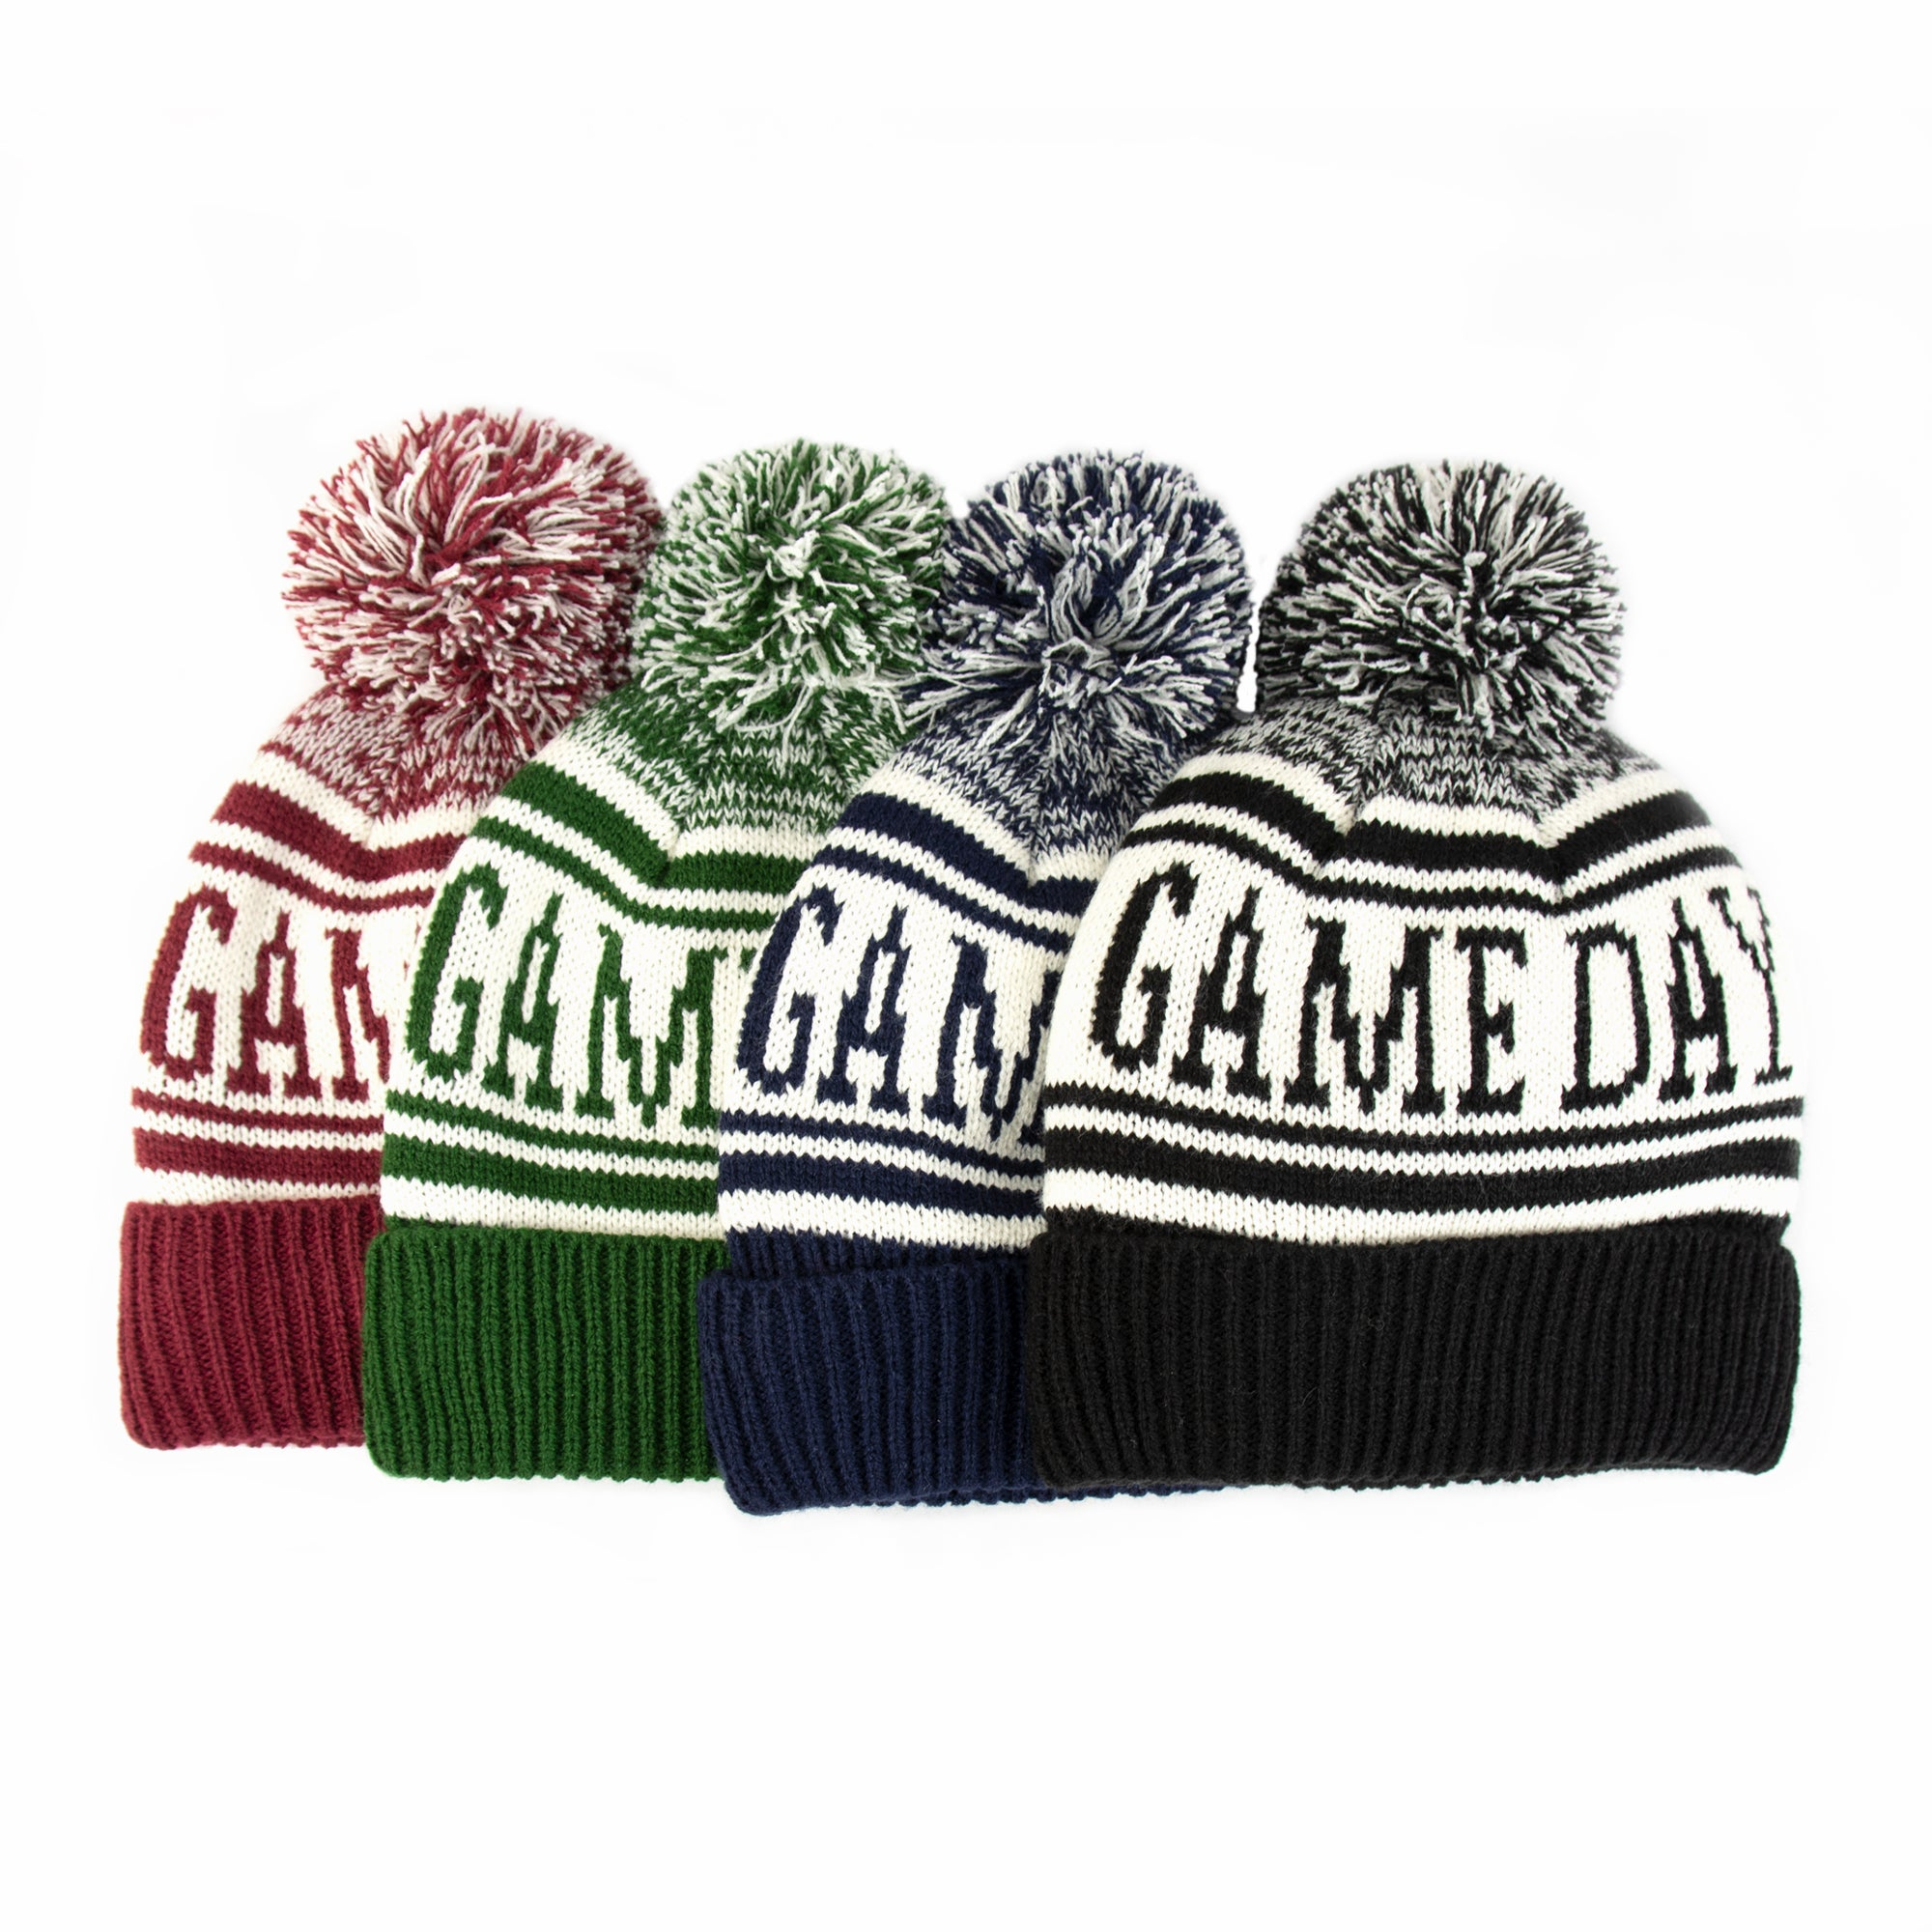 Women's Game Day Hat in Cherry Stone(Really Red), Basil (Green), Navy Blue, Black